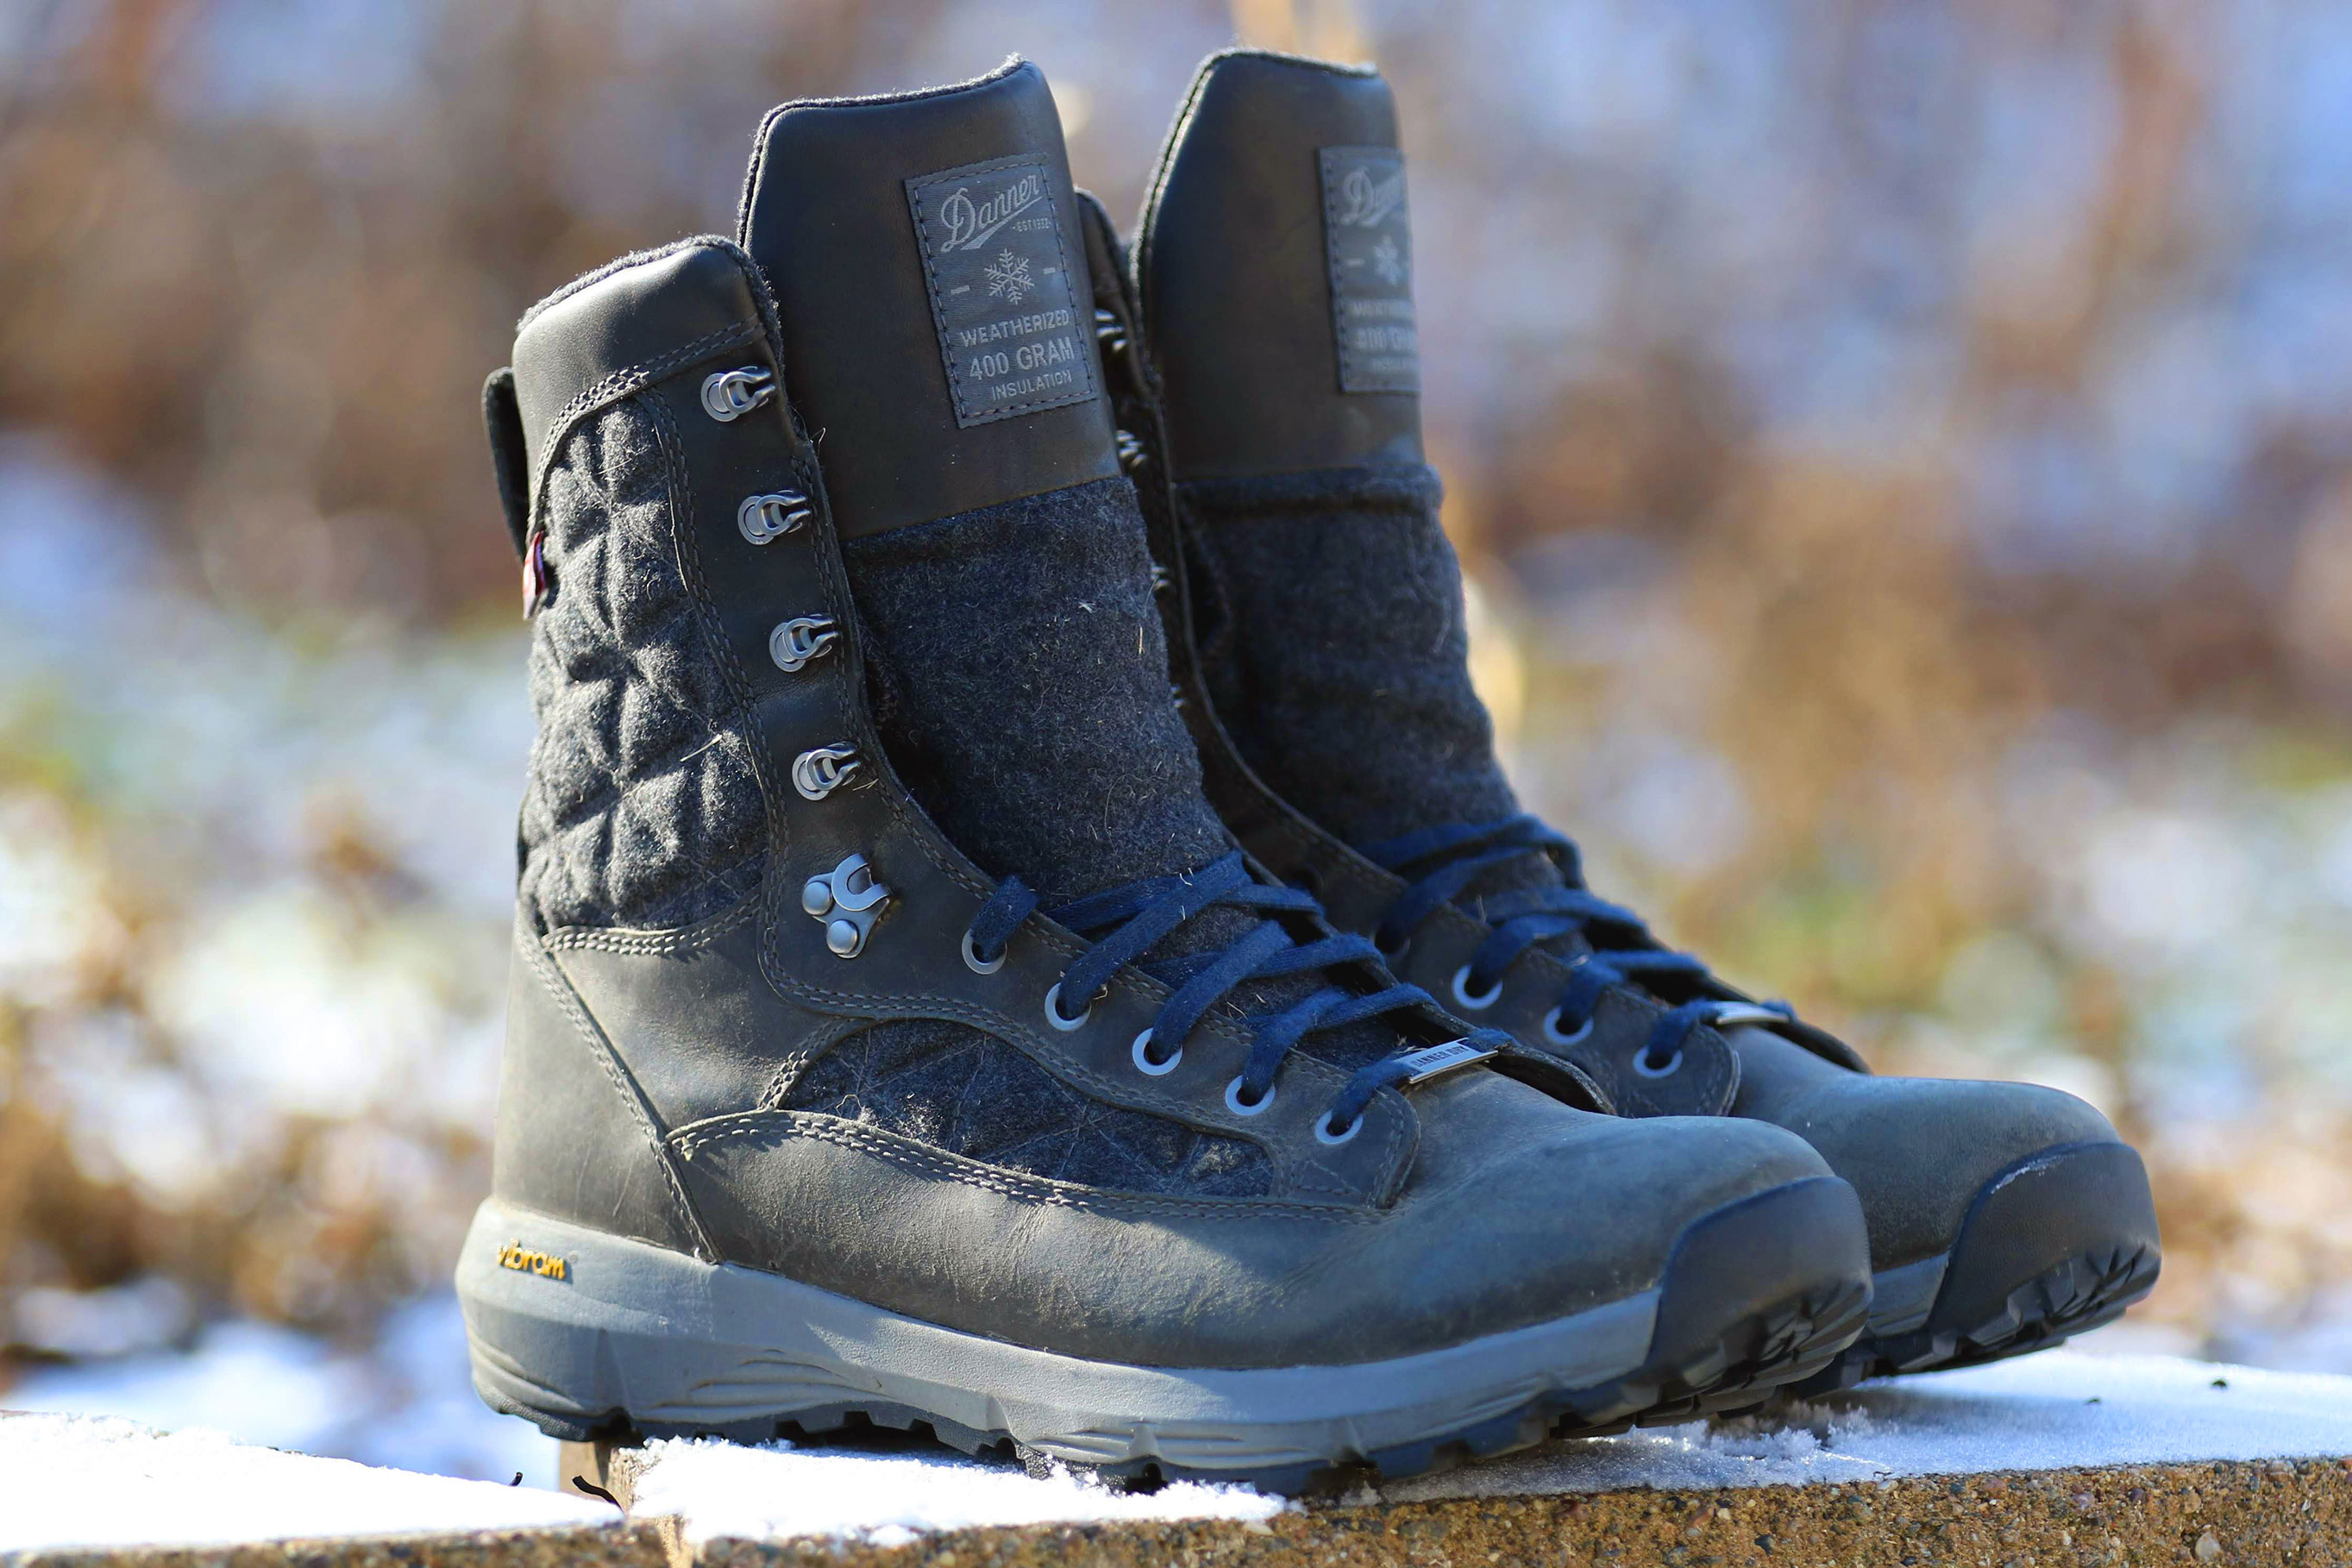 4d90d64c810 Warmth-to-Weight Sweet Spot (for Your Feet): Danner Raptor 650 First ...